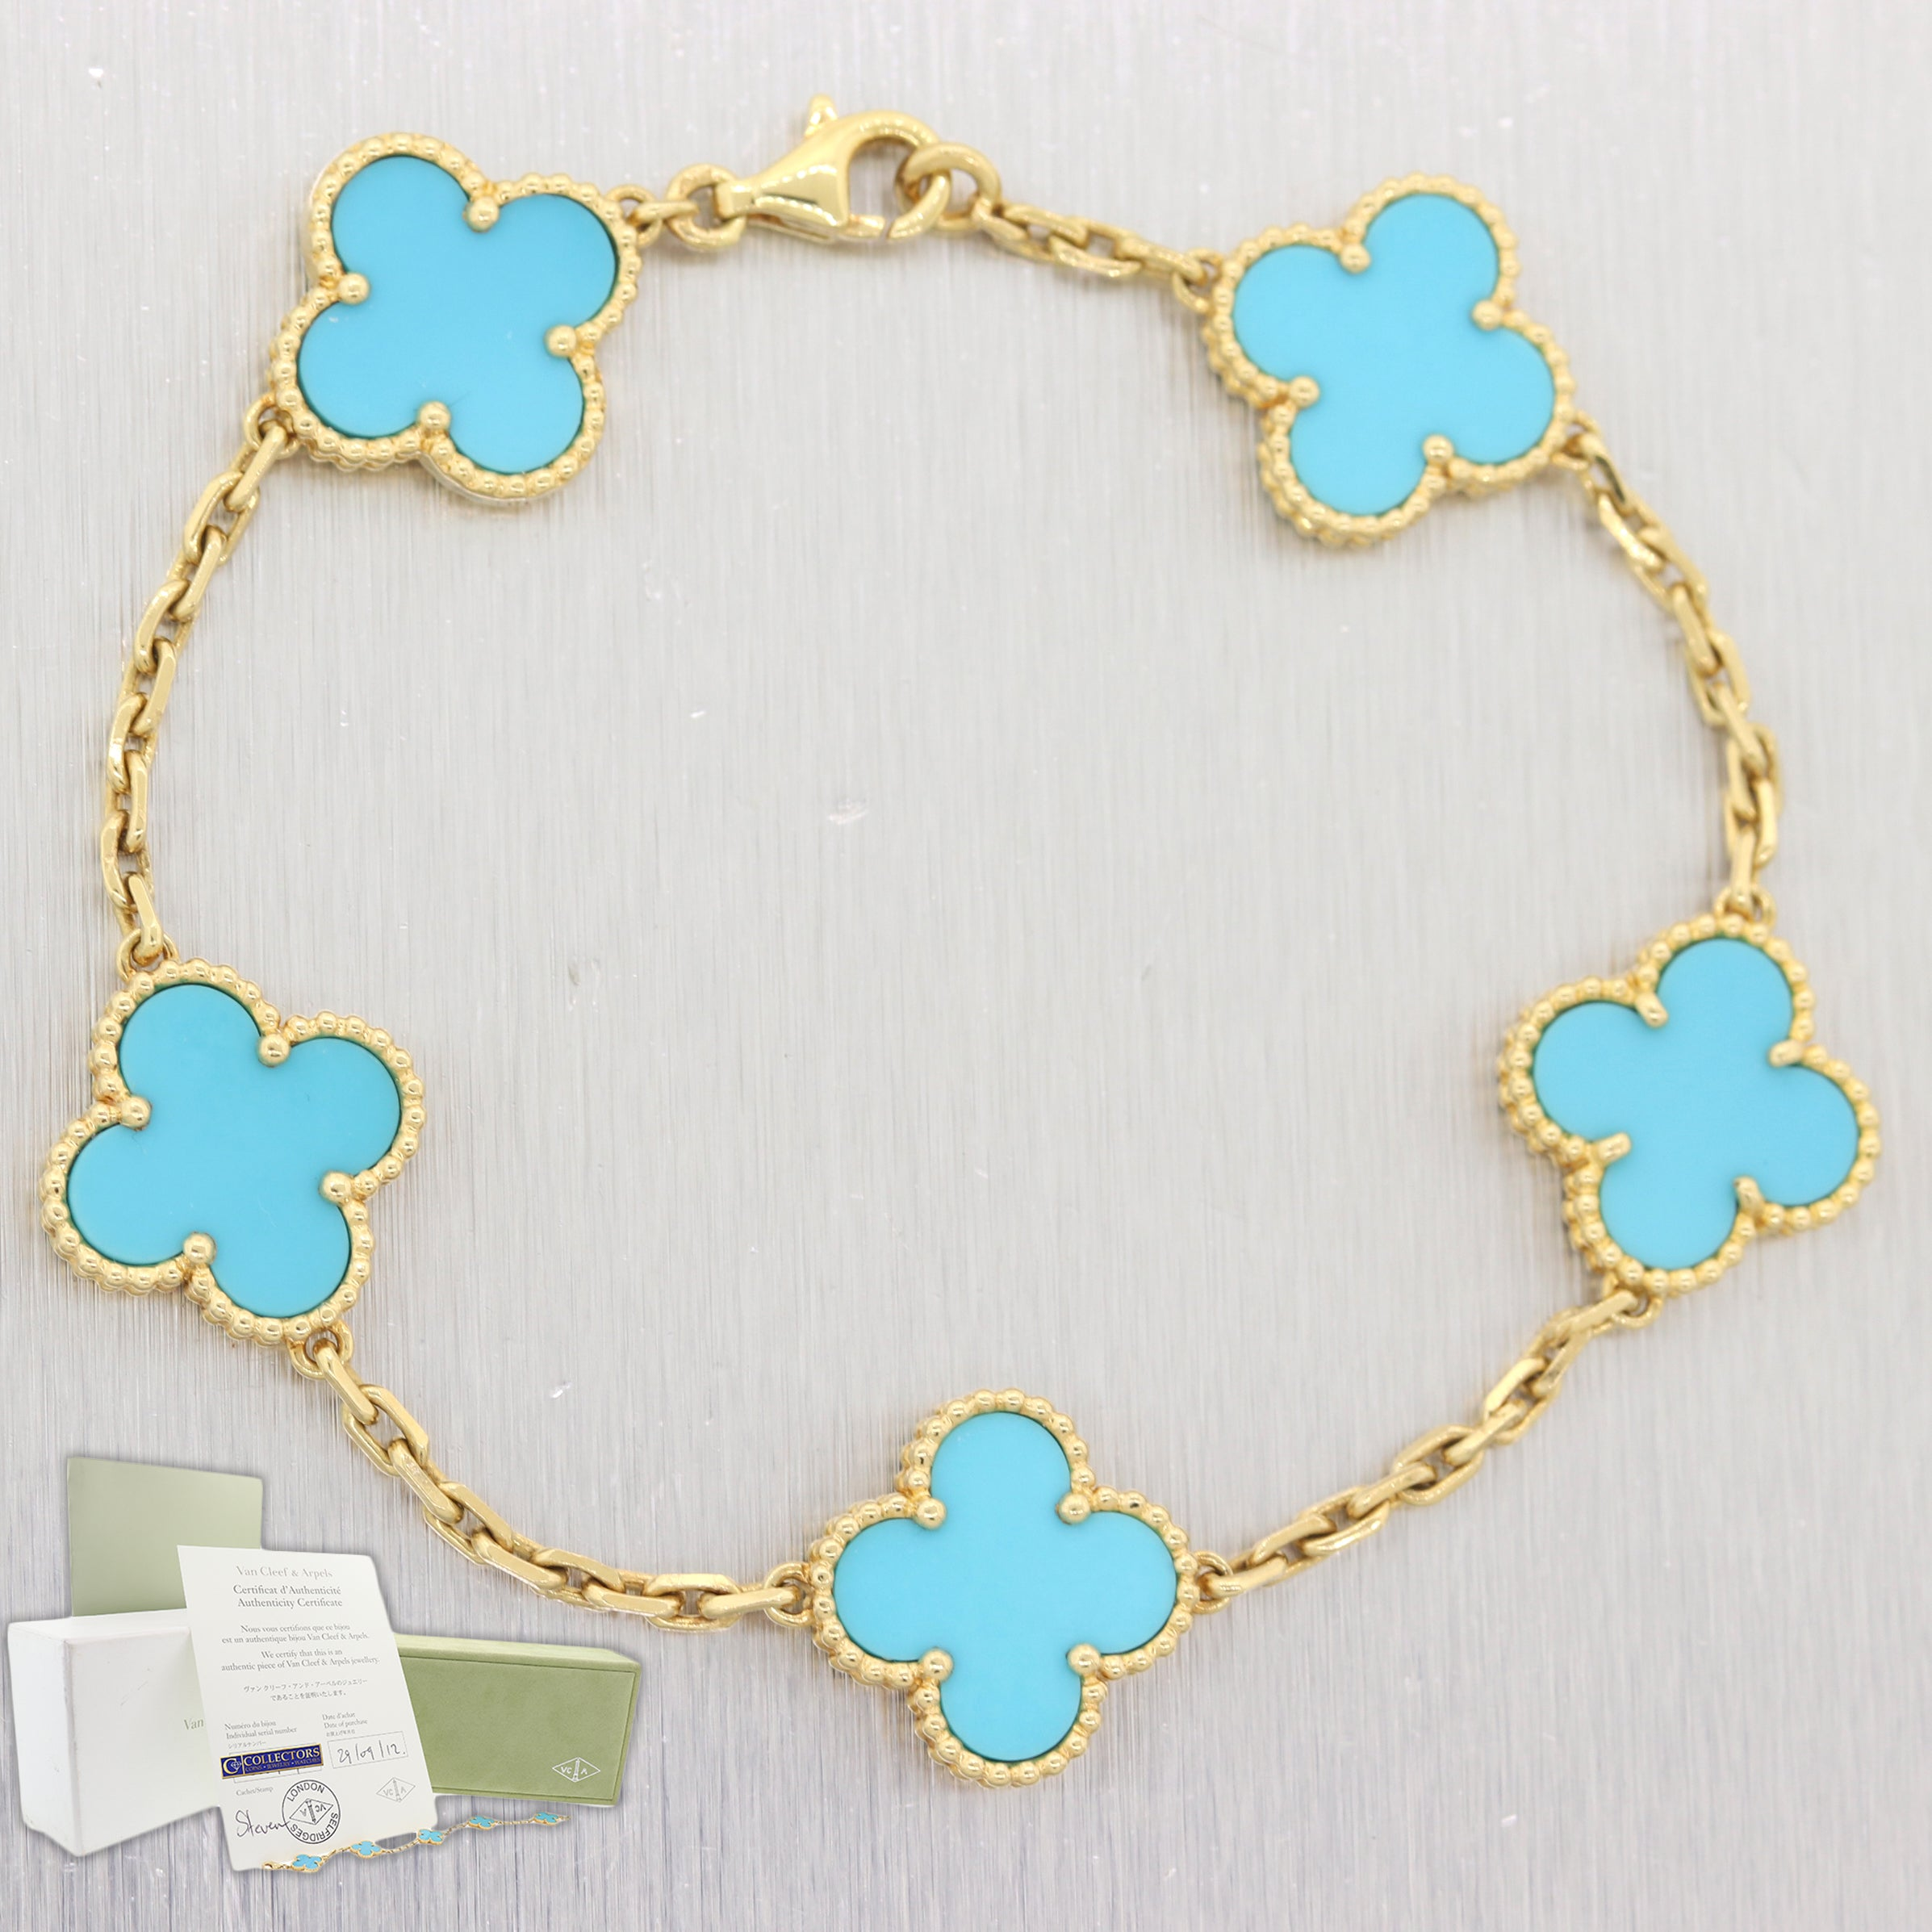 RARE Van Cleef & Arpels 18k Yellow Gold Turquoise Alhambra Bracelet